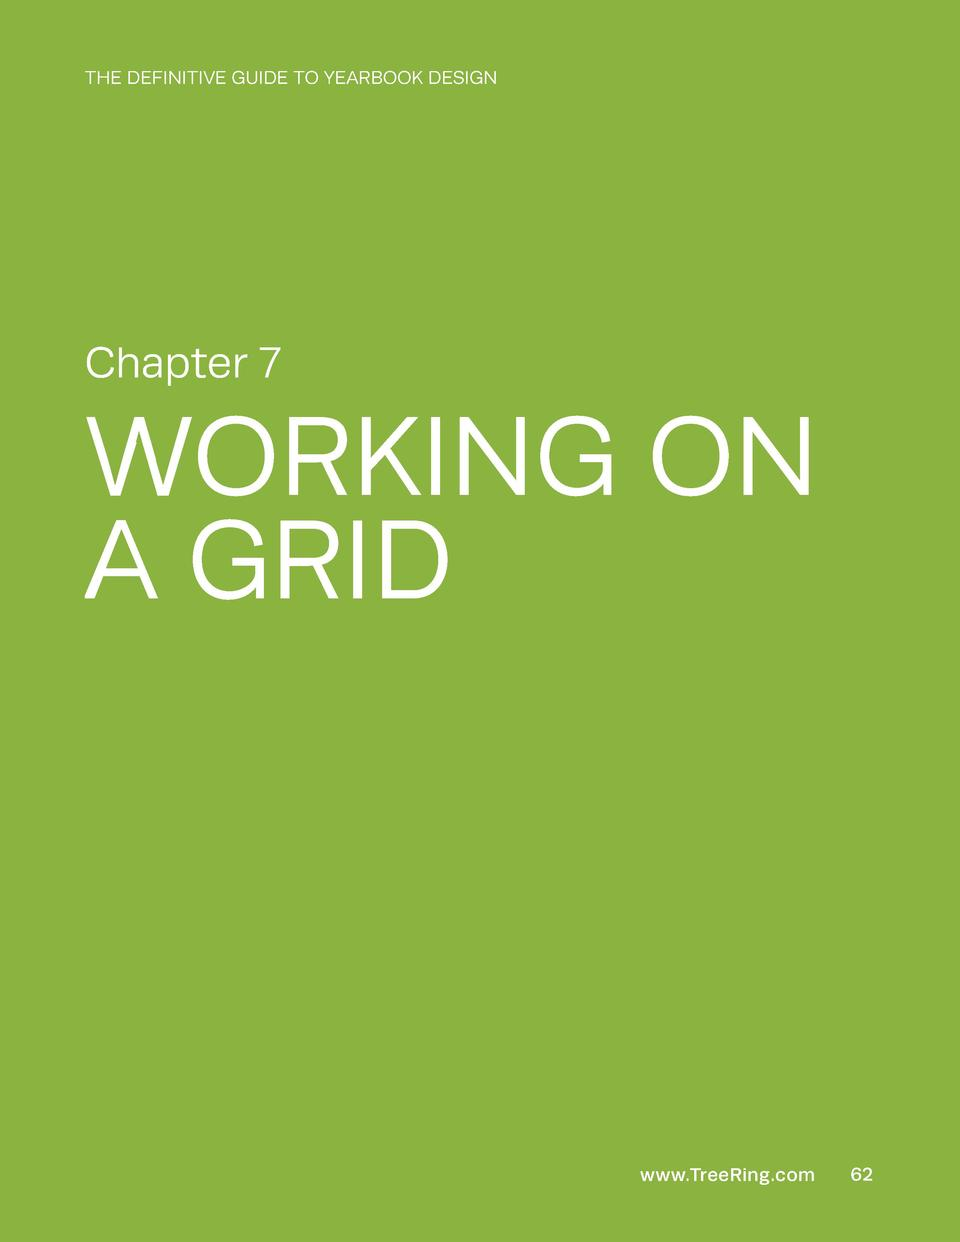 THE DEFINITIVE GUIDE TO YEARBOOK DESIGN  Chapter 7  WORKING ON A GRID  www.TreeRing.com  62